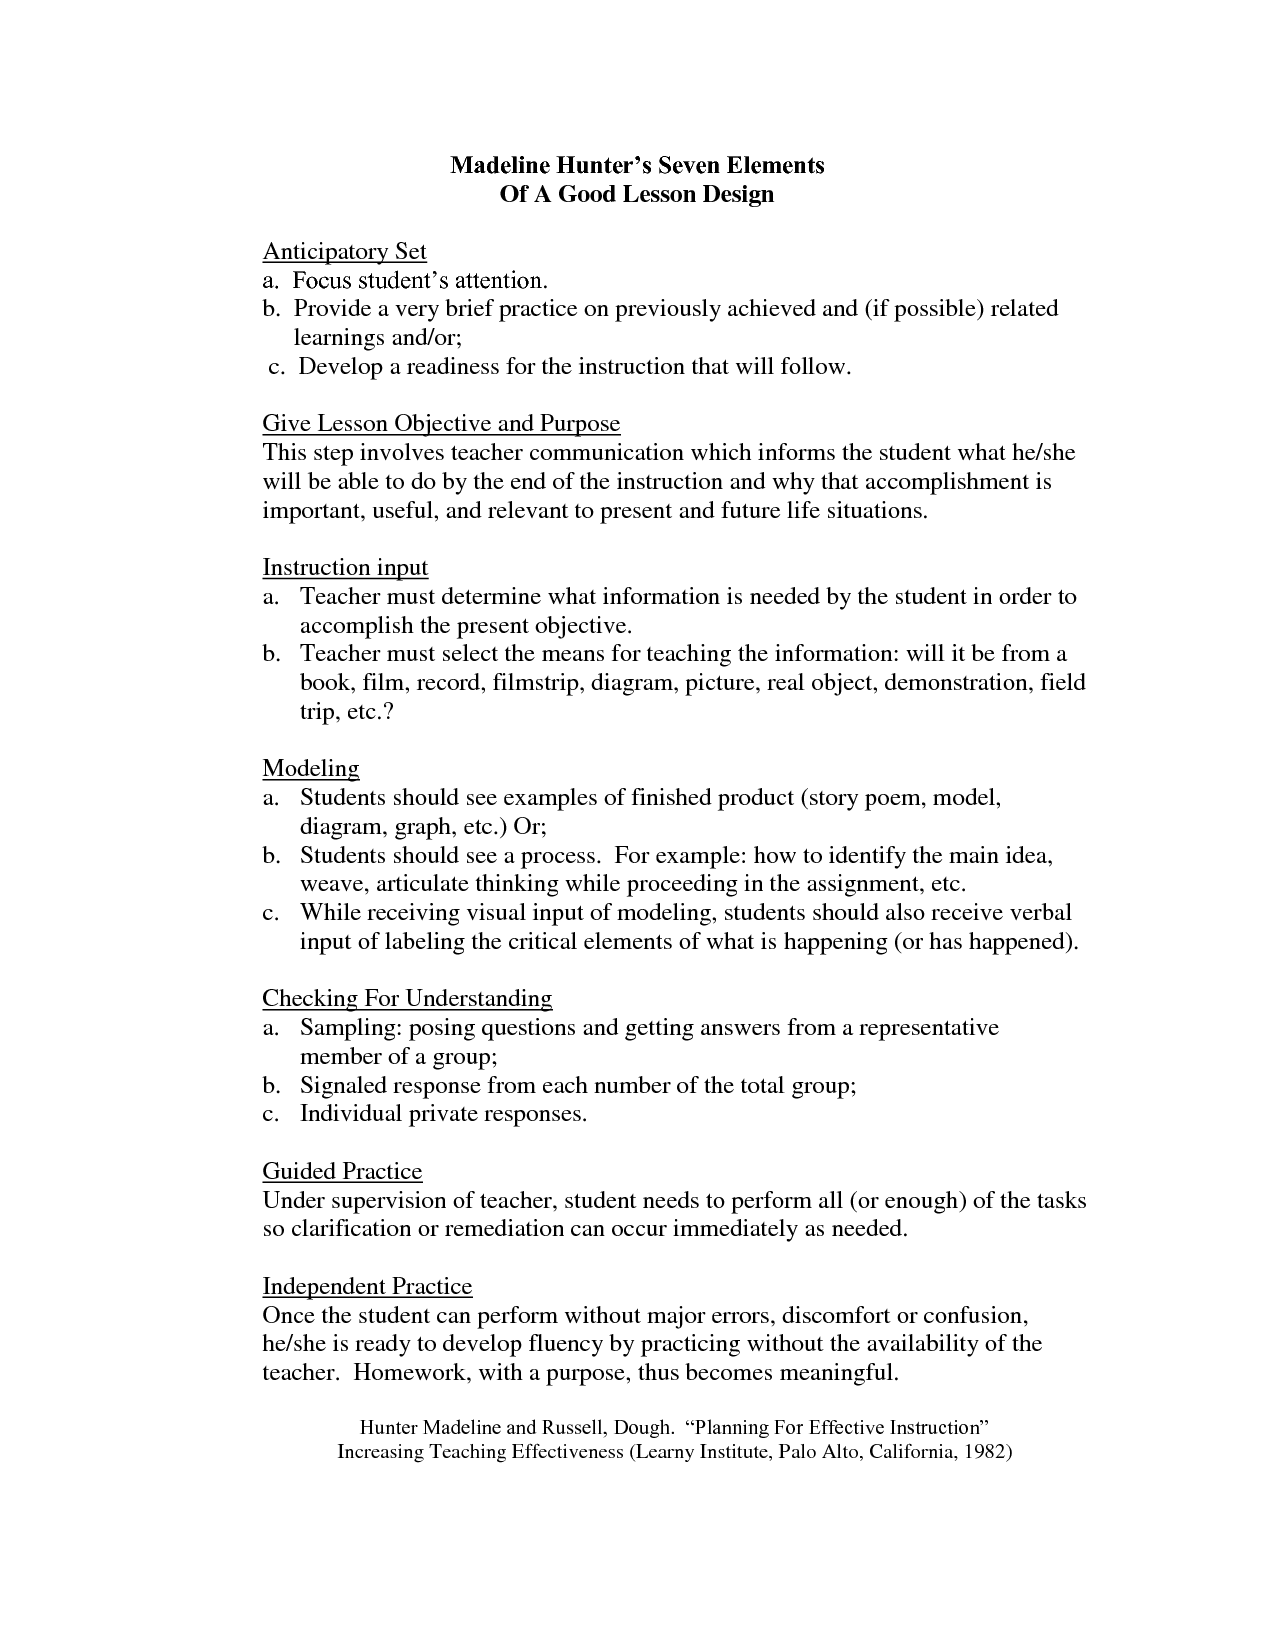 Madeline Hunter Lesson Plan Format Template Google Search Th - Madeline hunter lesson plan template